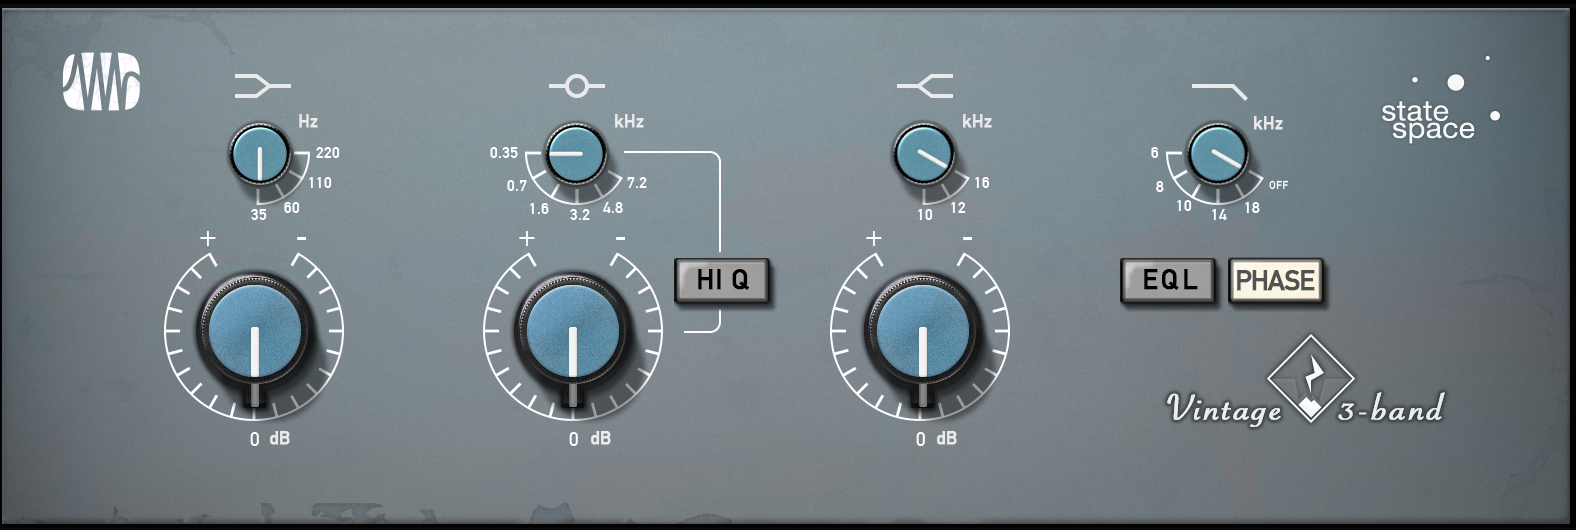 PreSonus Vintage 3-Band EQ Fat Channel Plugin [Online Code] - Eq In Vst Plug